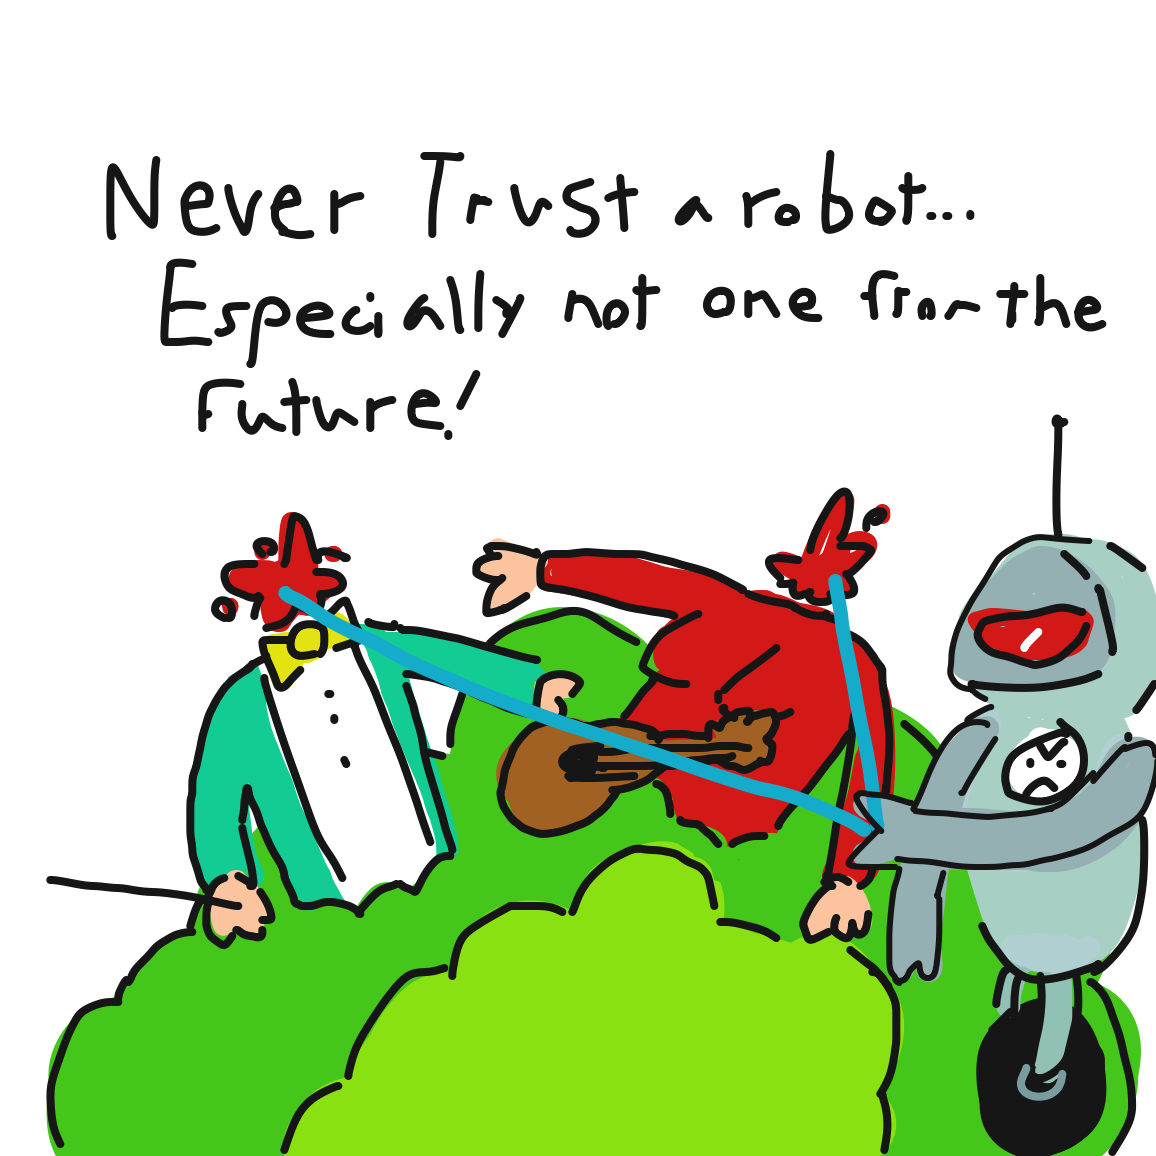 Darn Robots. Can't be trusted if you ask me.  - Online Drawing Game Comic Strip Panel by Reducing